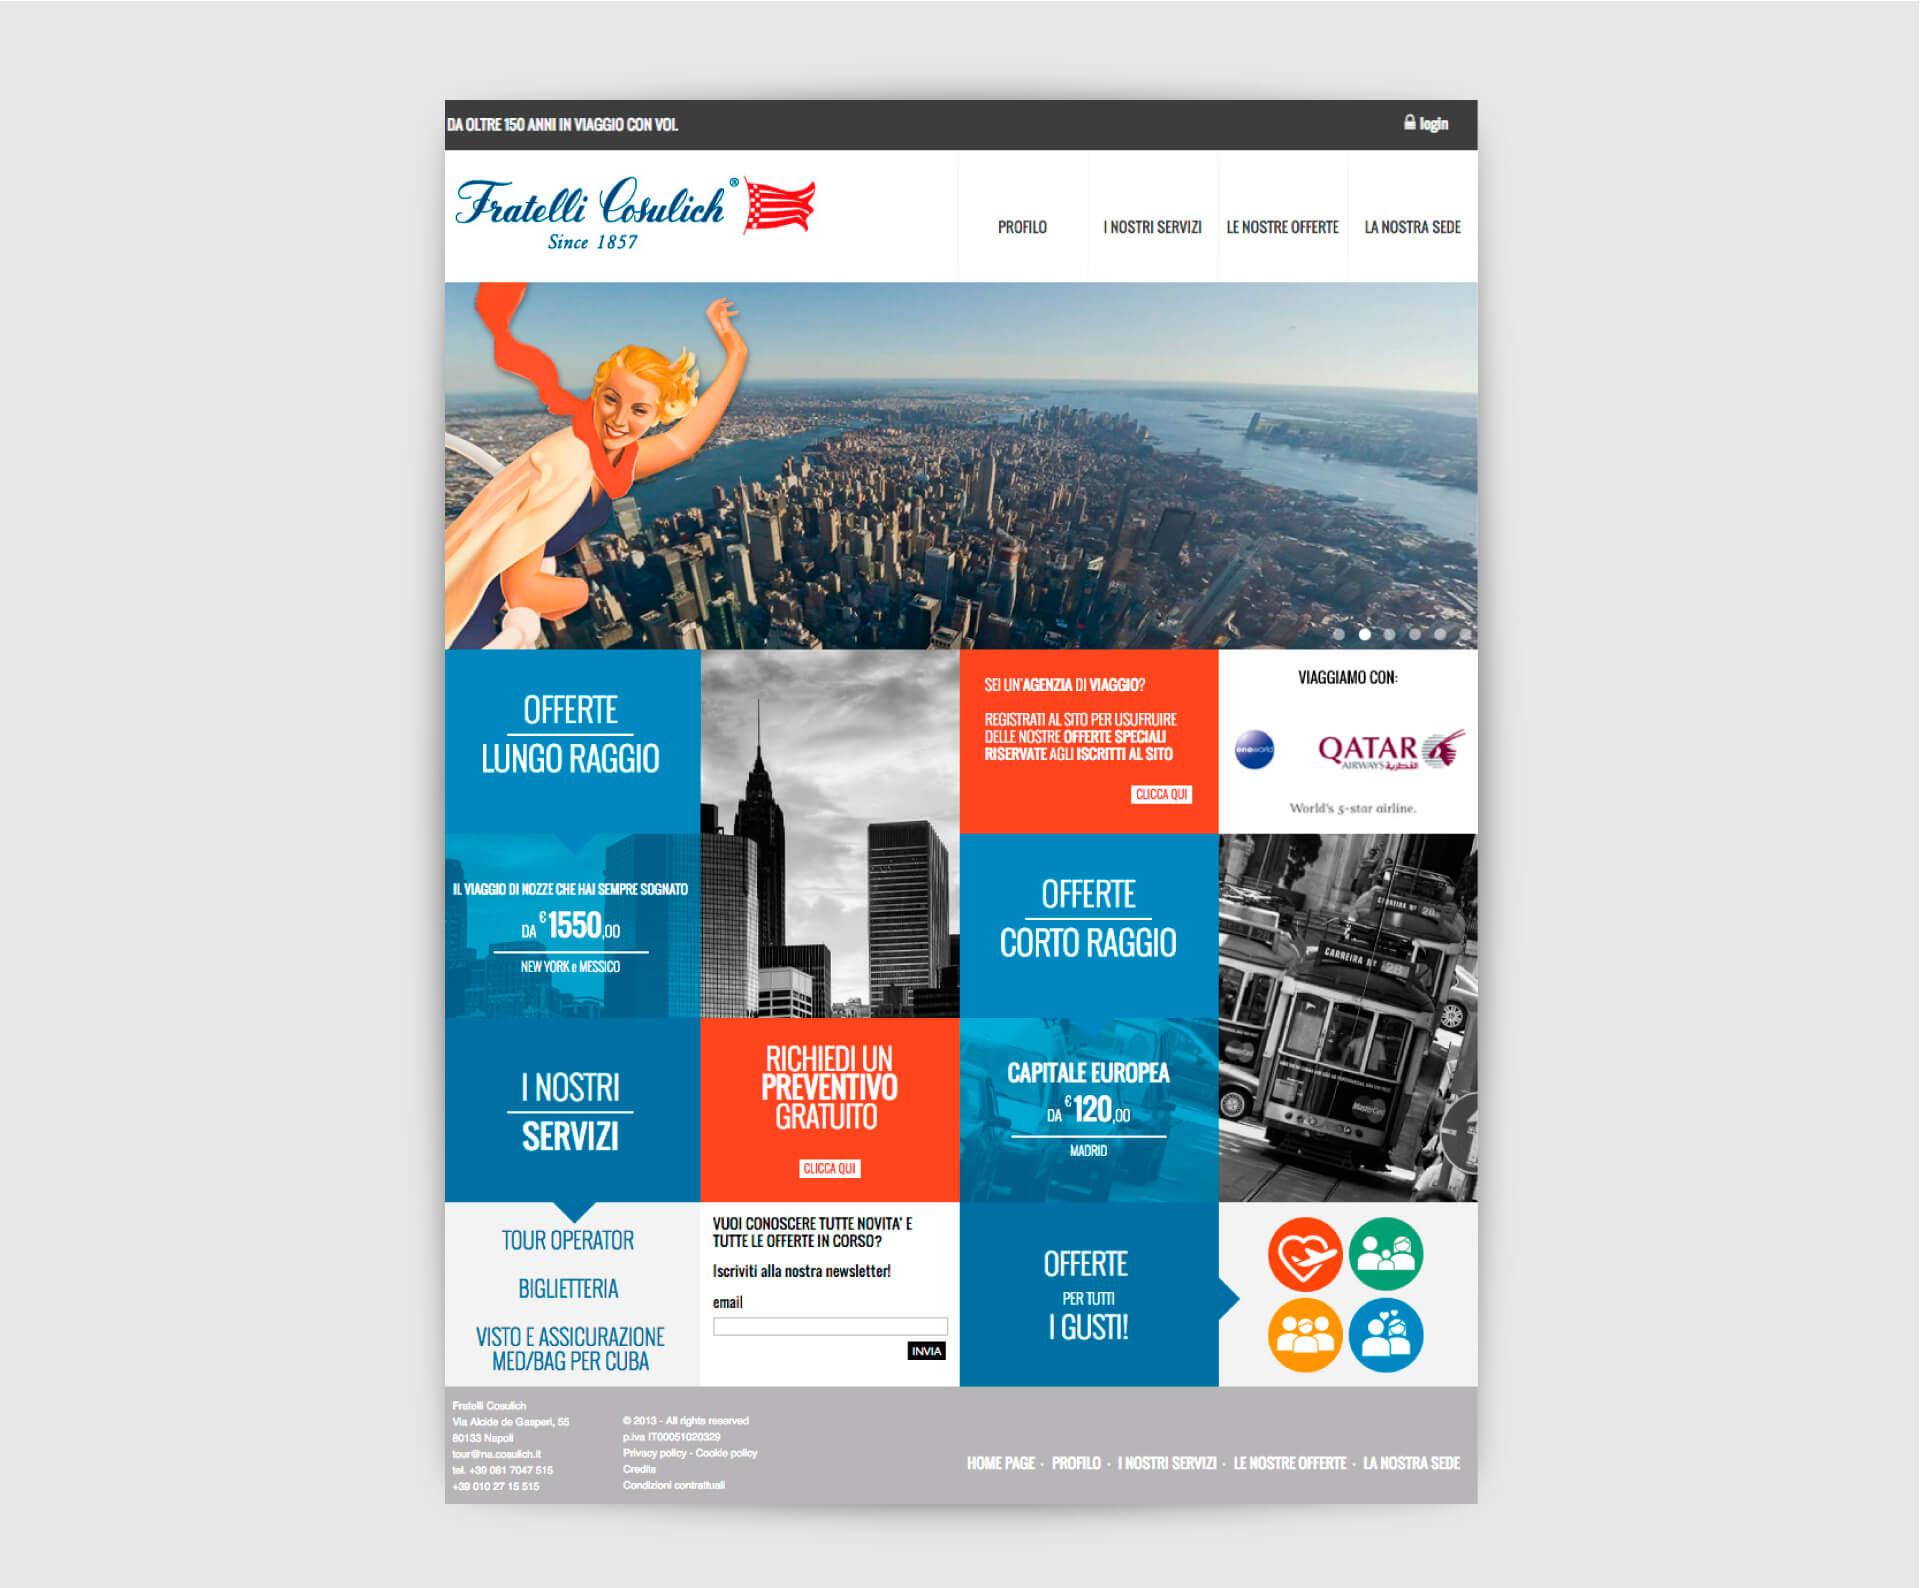 mintlab-webdesign-cosulich-travel-02